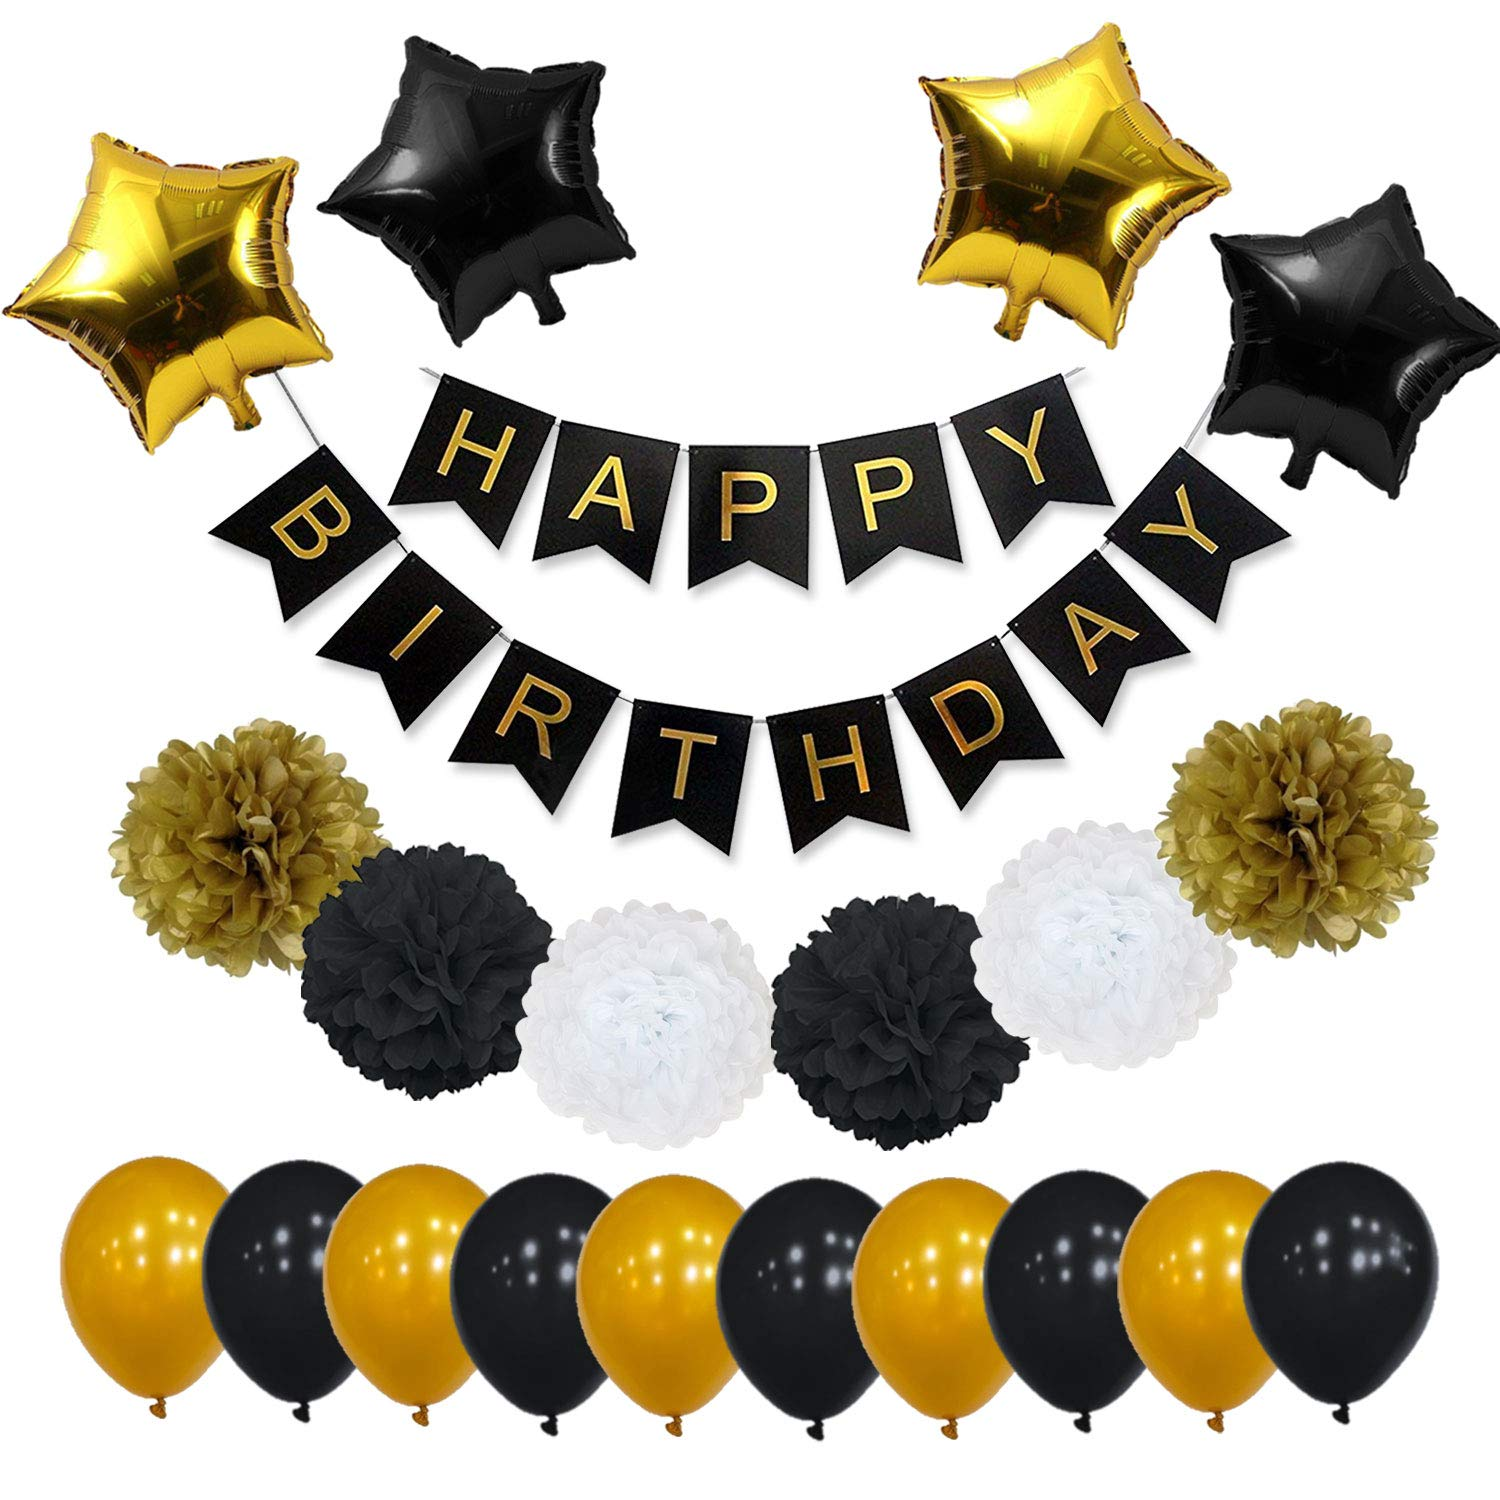 yotruth Black and Gold Party Decorations for Birthday Perfect Vibrant Gold Black White Birthday Decorations for Men and Women